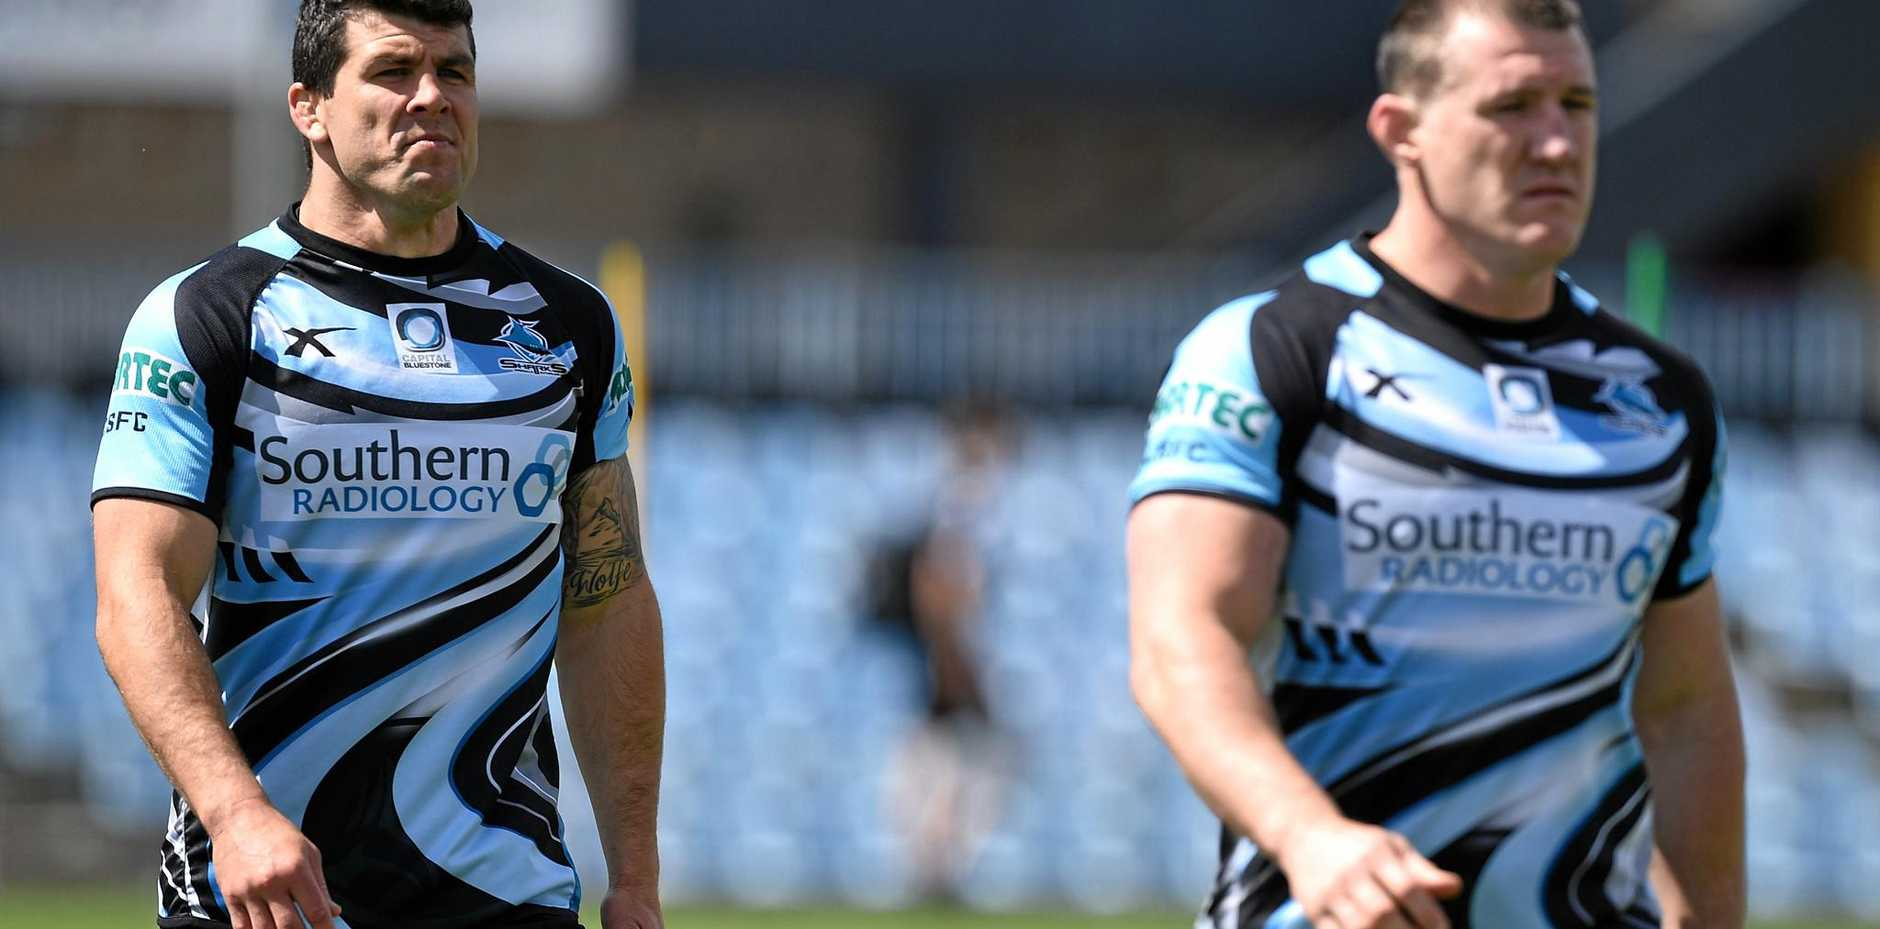 Cronulla Sharks players Michael Ennis and Paul Gallen take part in a training session at Southern Cross Stadium in Sydney.